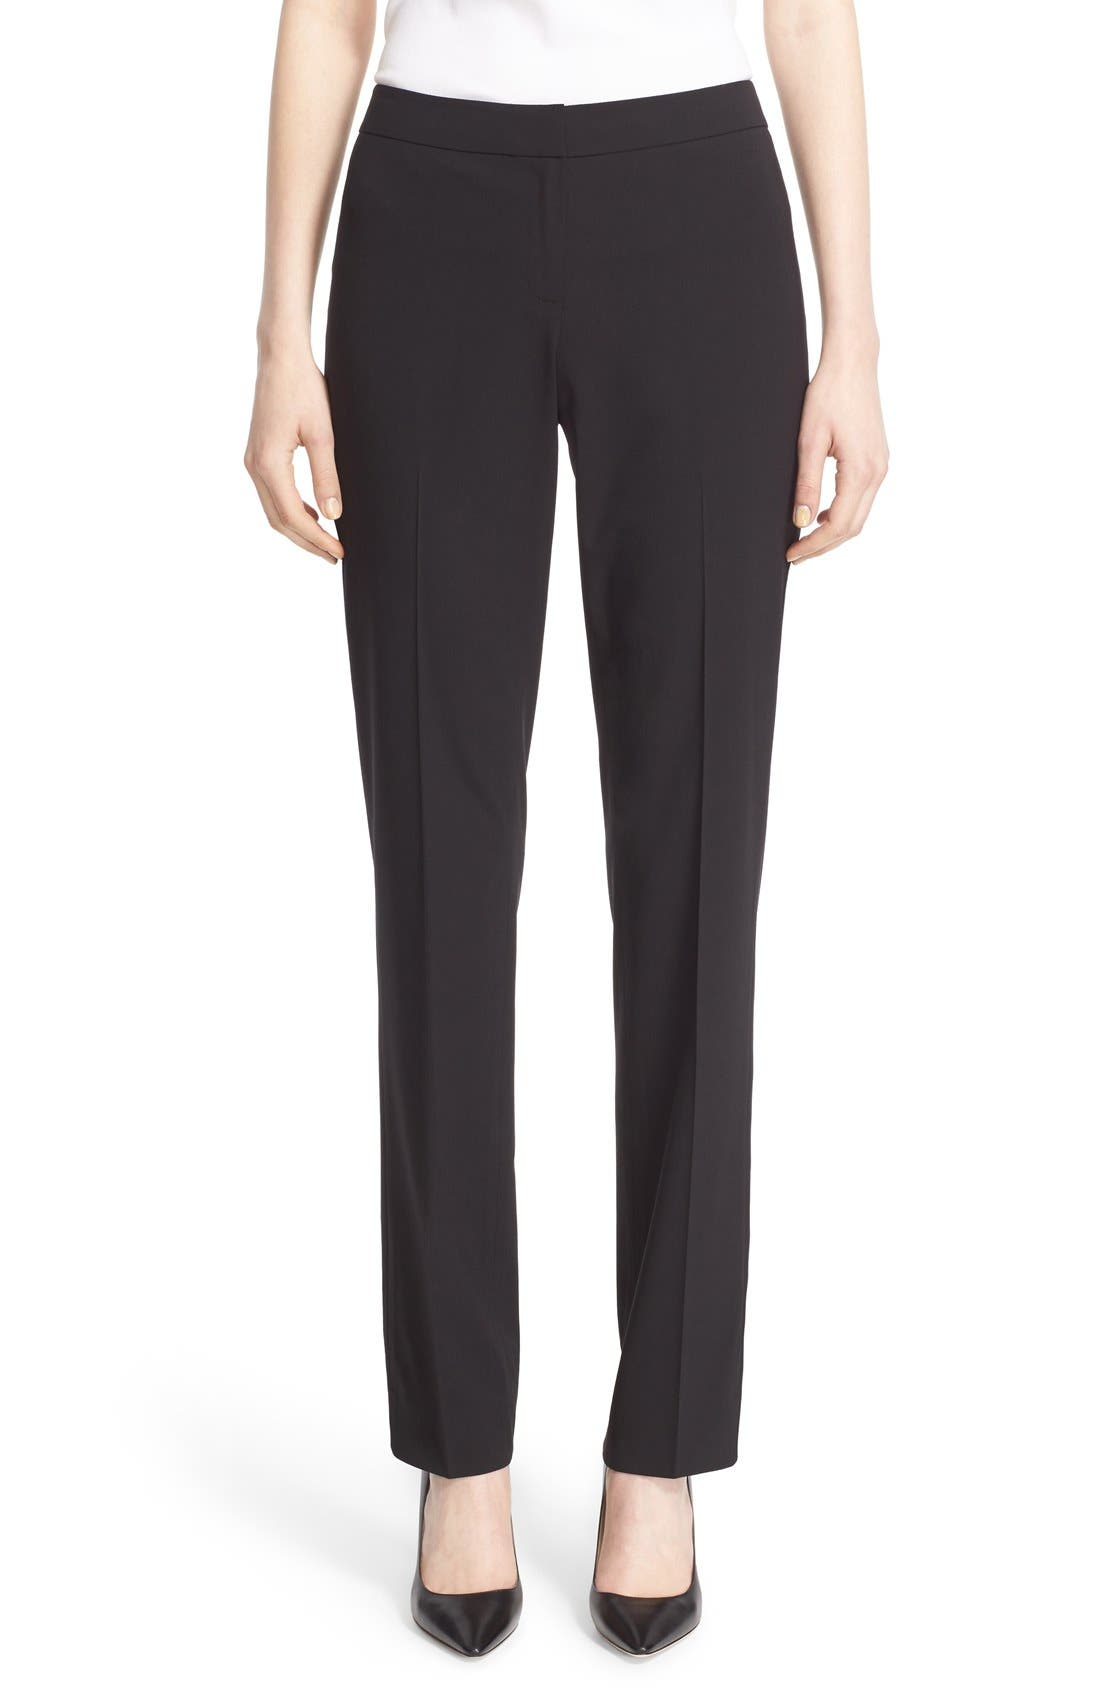 Alternate Image 1 Selected - Lafayette 148 New York 'Barrow' Stretch Wool Pants